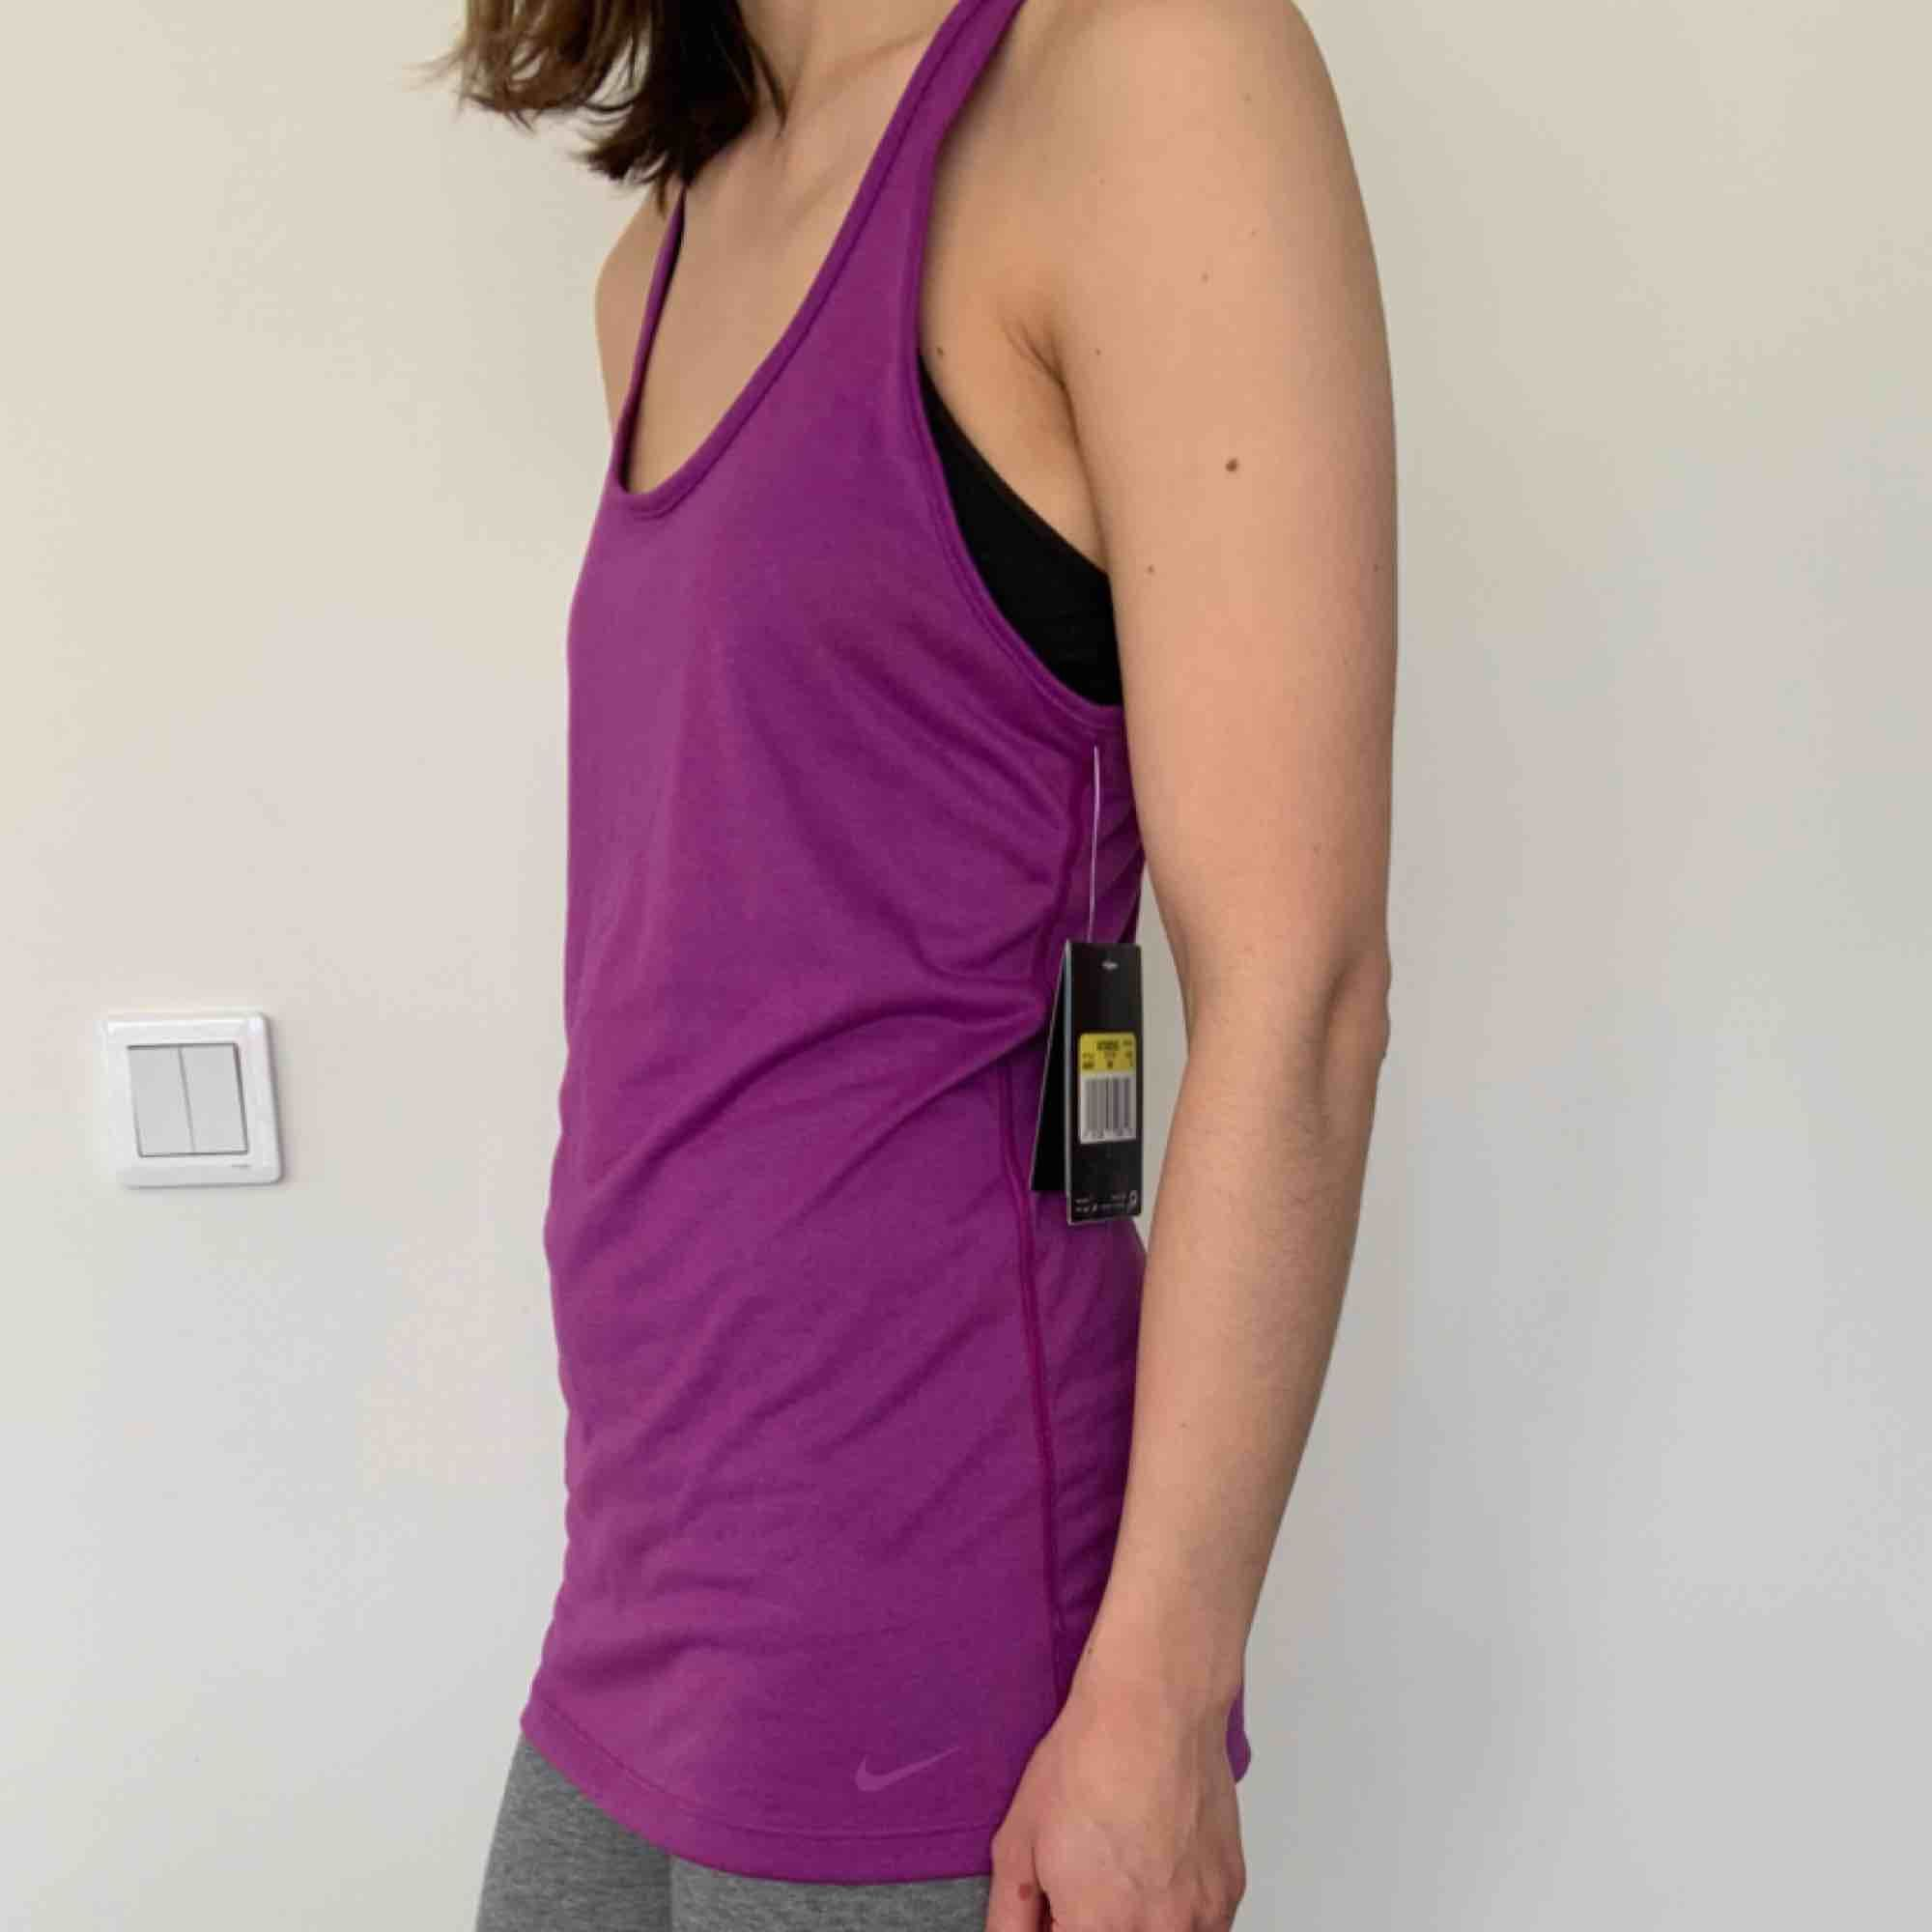 Nike Dry Fit tank top Brand: Nike Size: S Colour: Purple  Never worn. Still has tag. 2 years old.. Toppar.